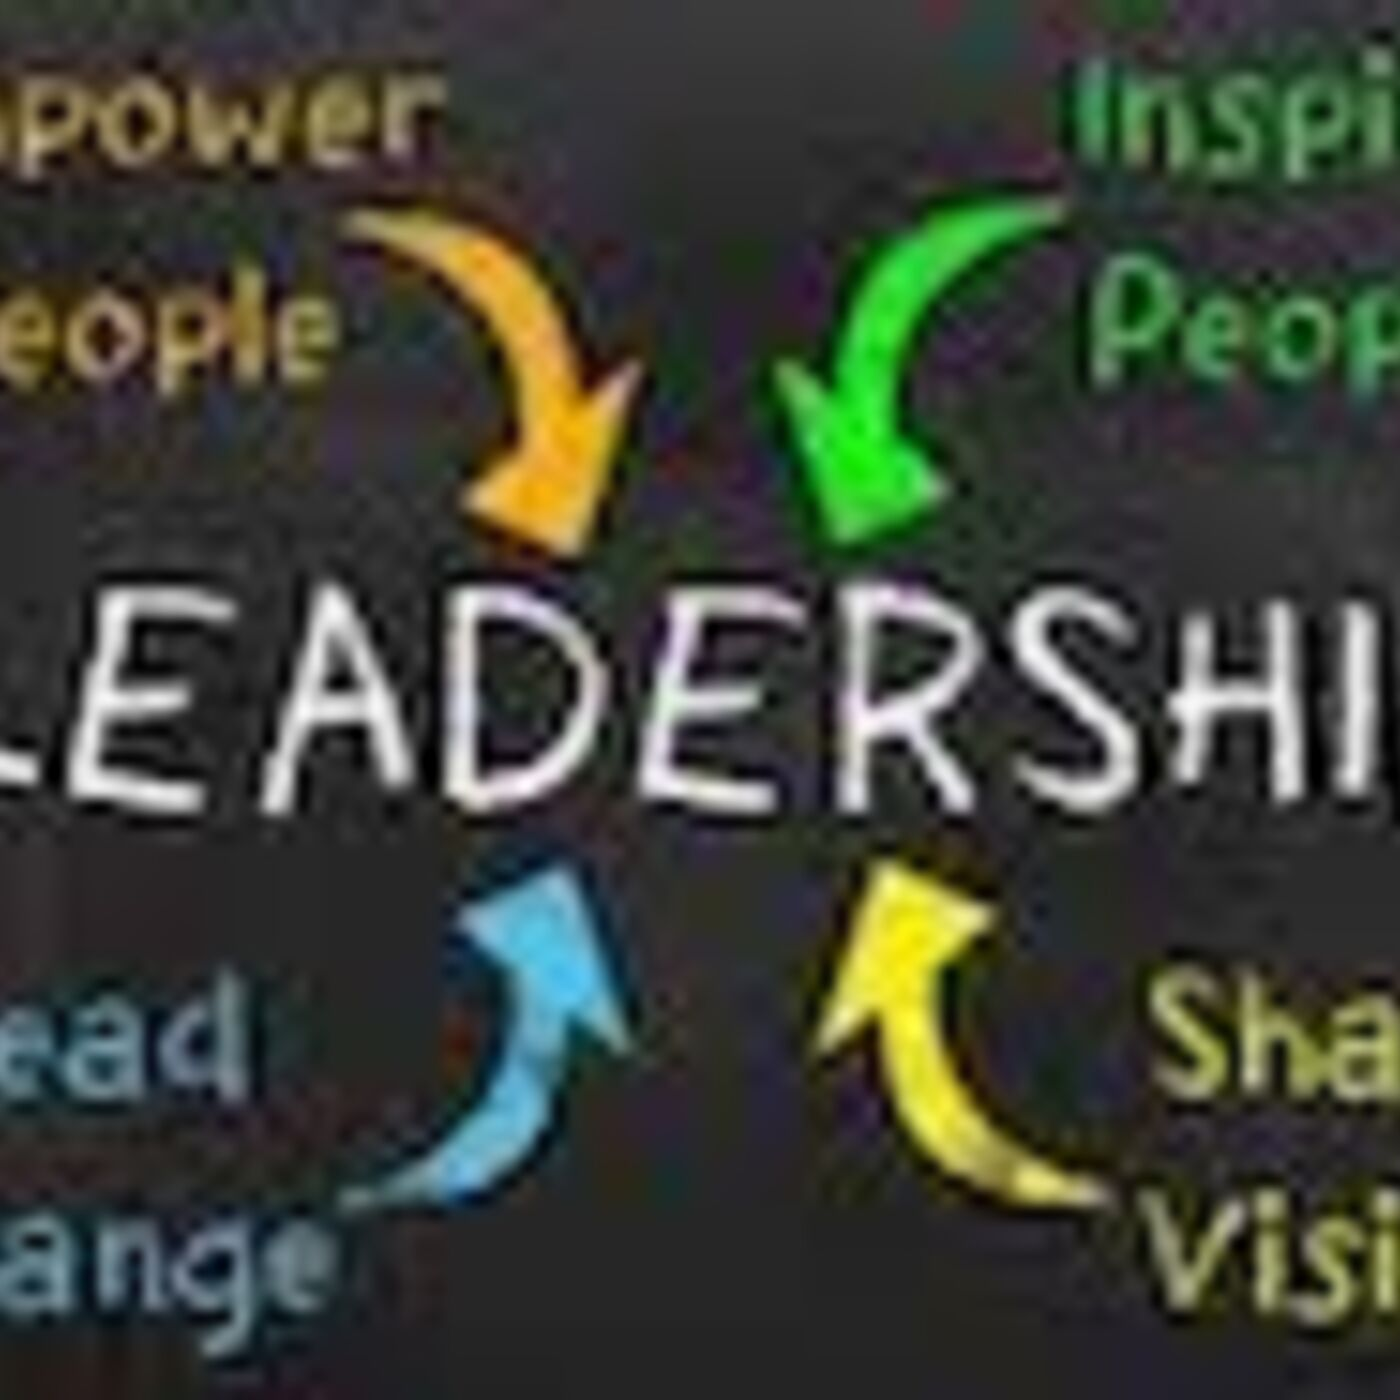 WHAT IS LEADERSHIP? ARE GOOD LEADERS SIMPLY BORN THAT WAY?